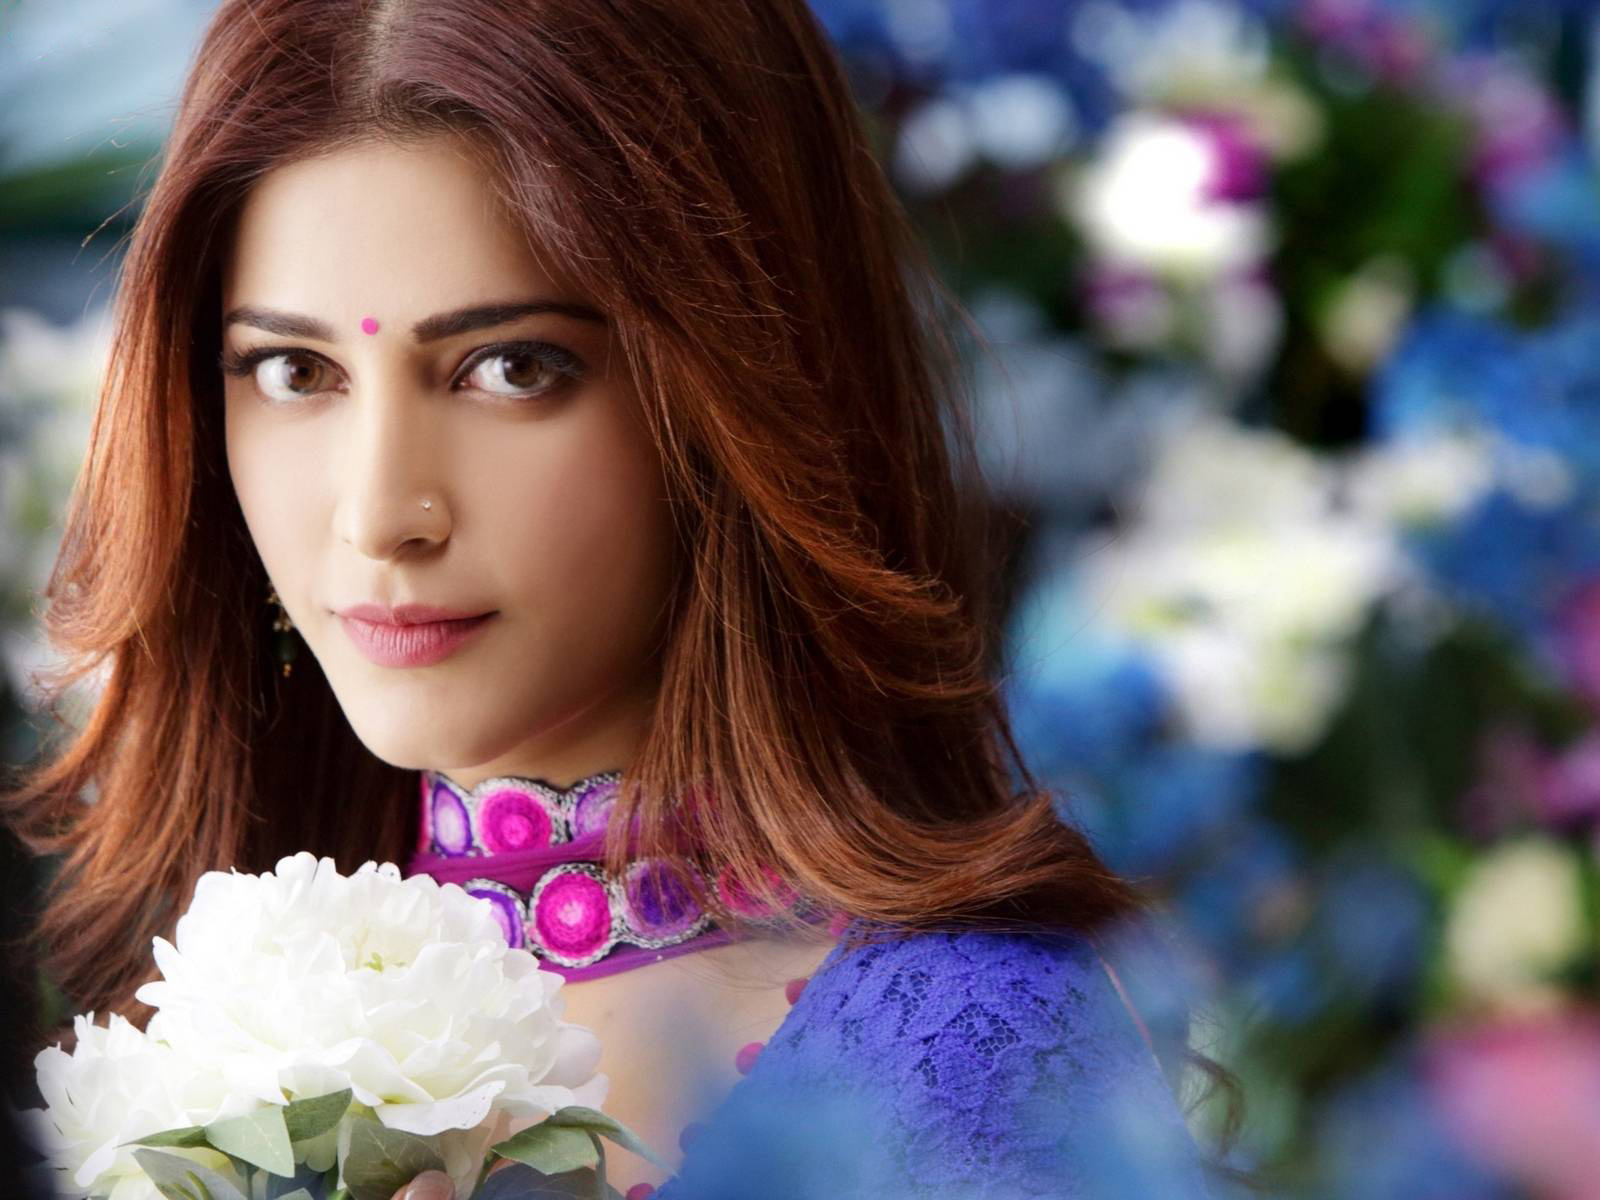 shruti hassan cute hd wallpapers